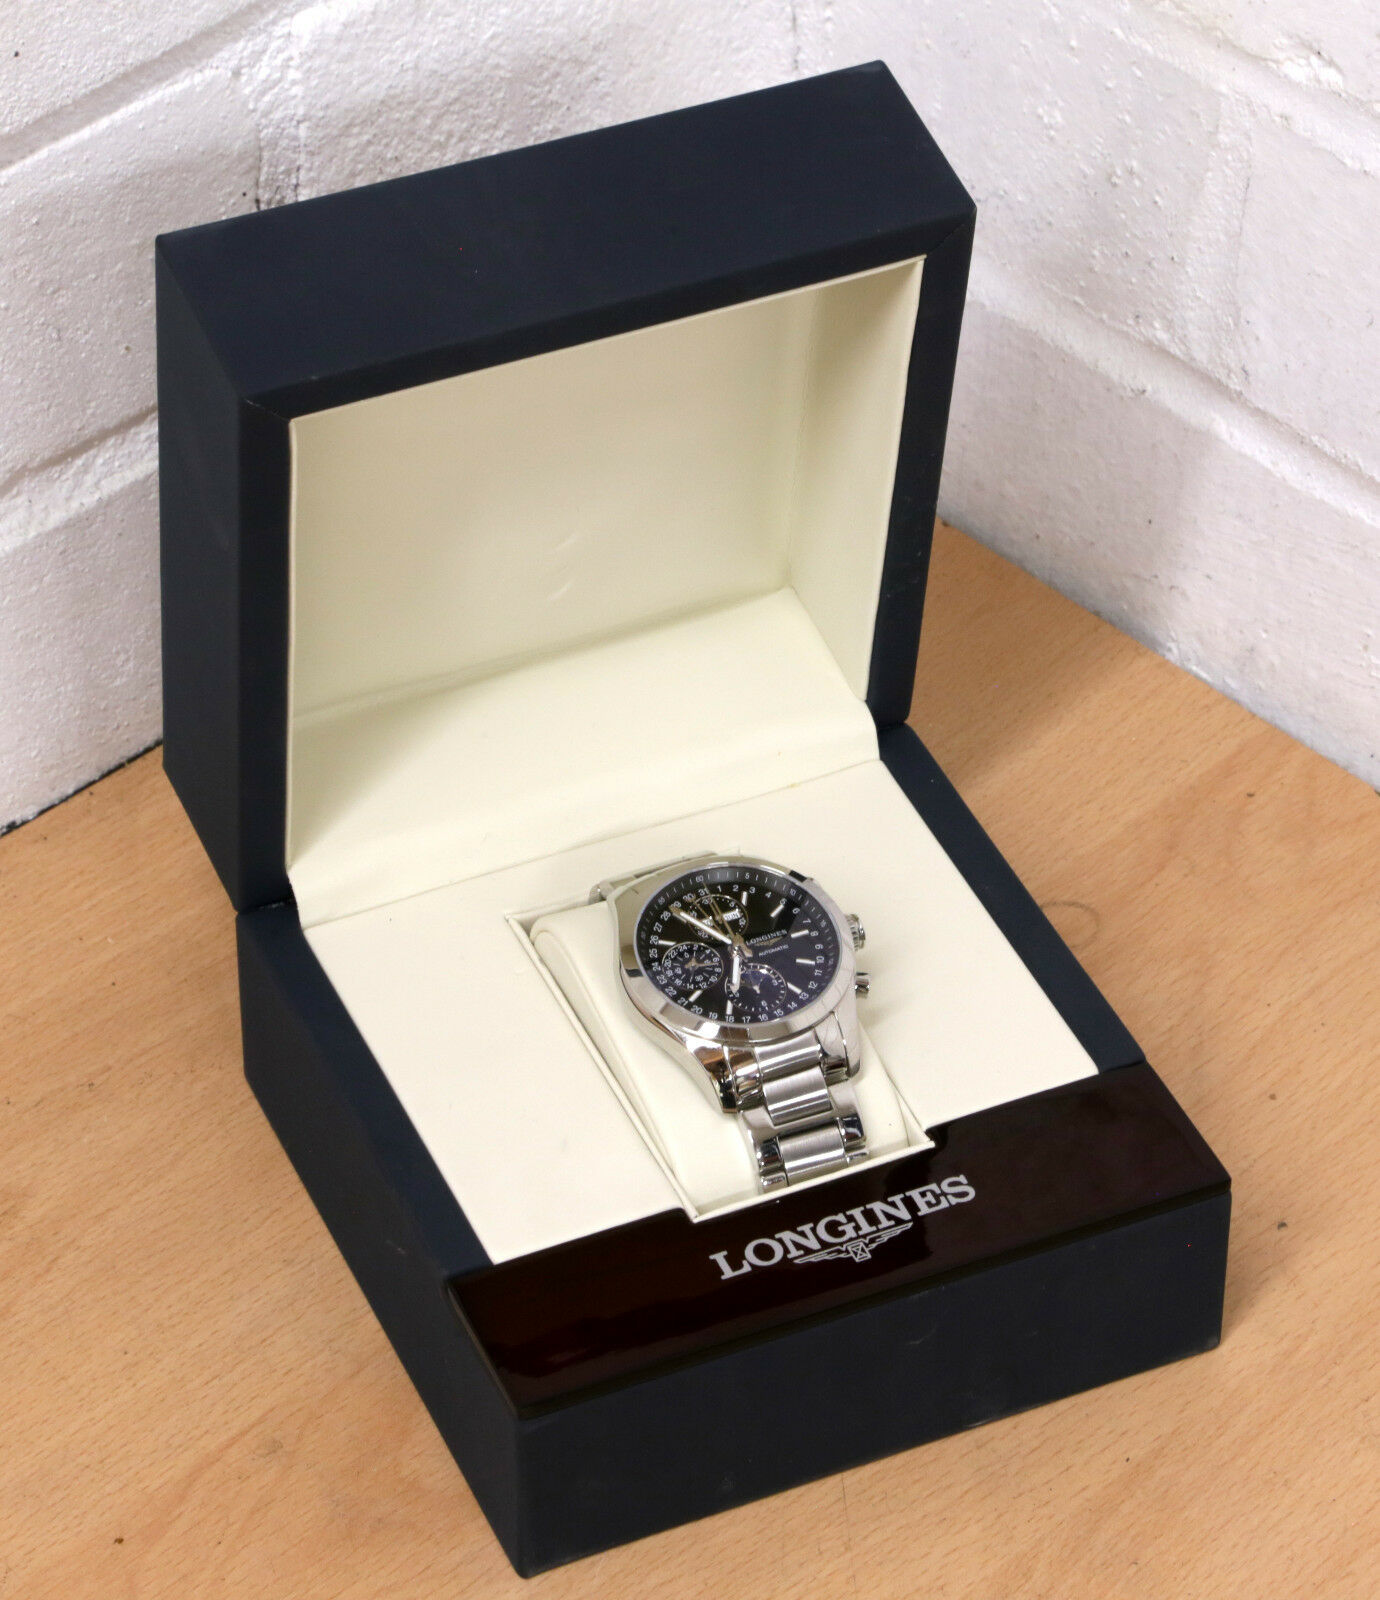 LONGINES Conquest Classic Moonphase Chronograph automatic Mens Watch L2.798.4.52 - watch picture 1